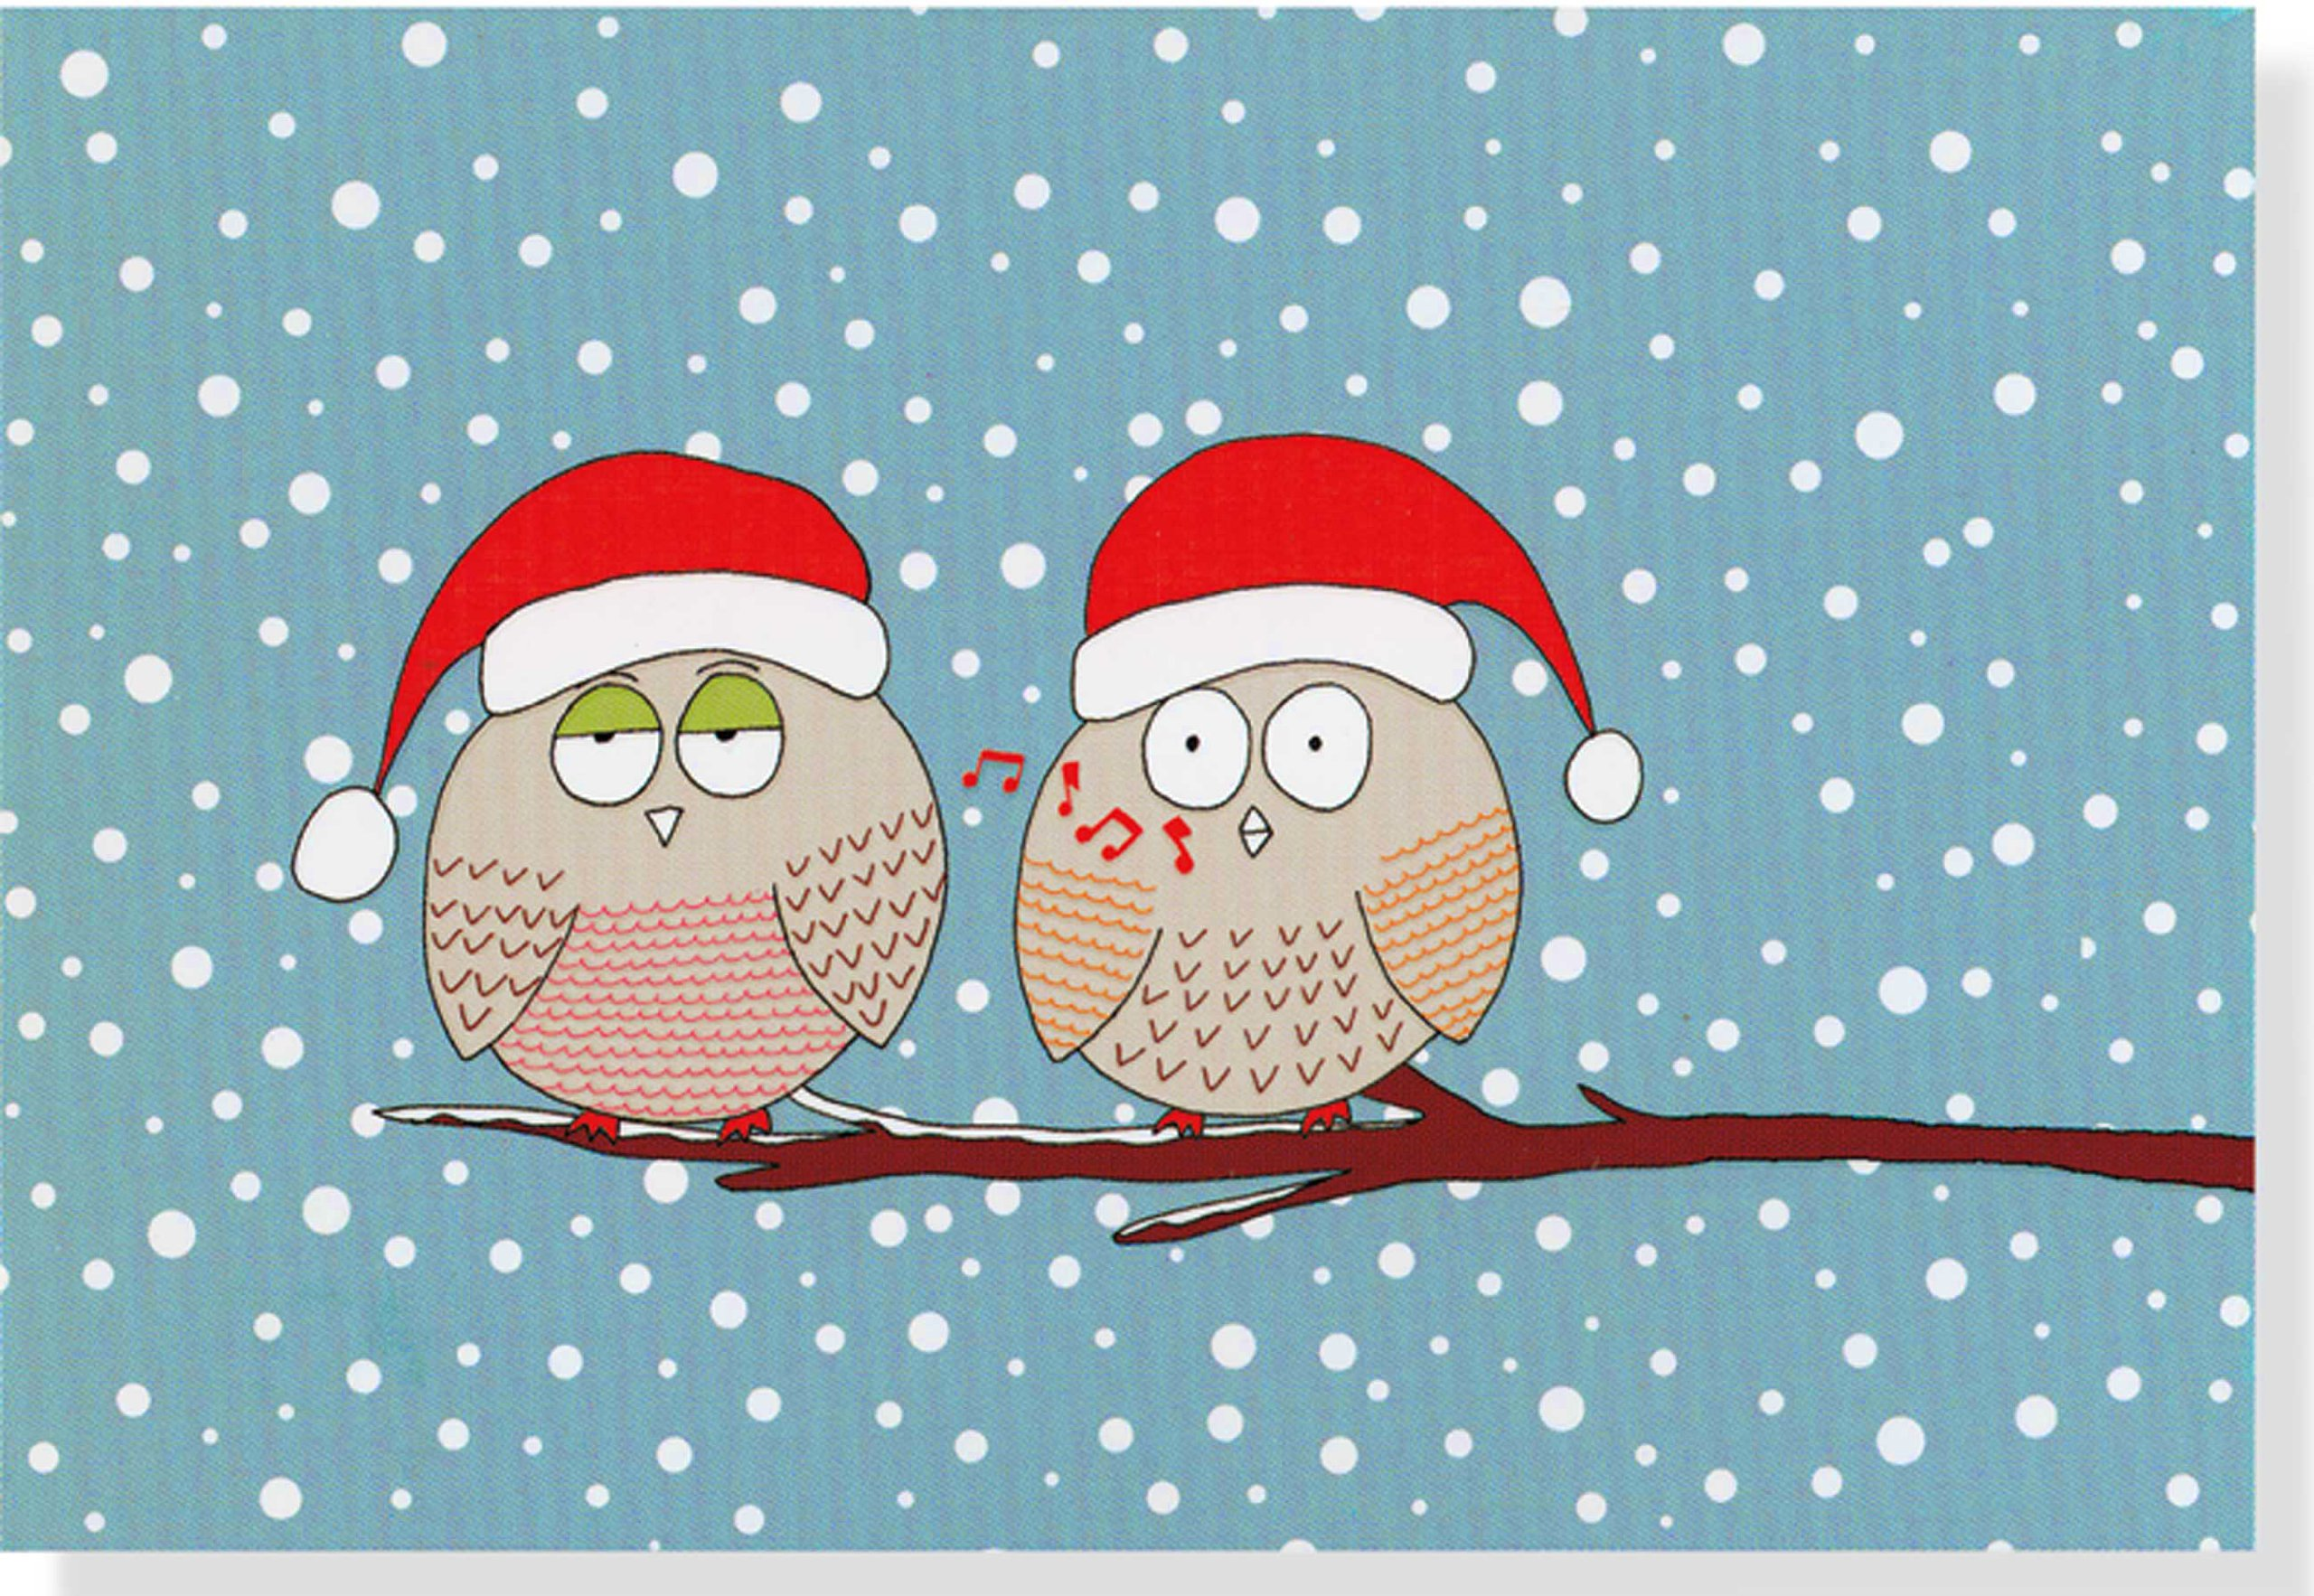 Top 10 best christmas greeting cards in 2018 great for upcoming xmas whistling owls holiday cards m4hsunfo